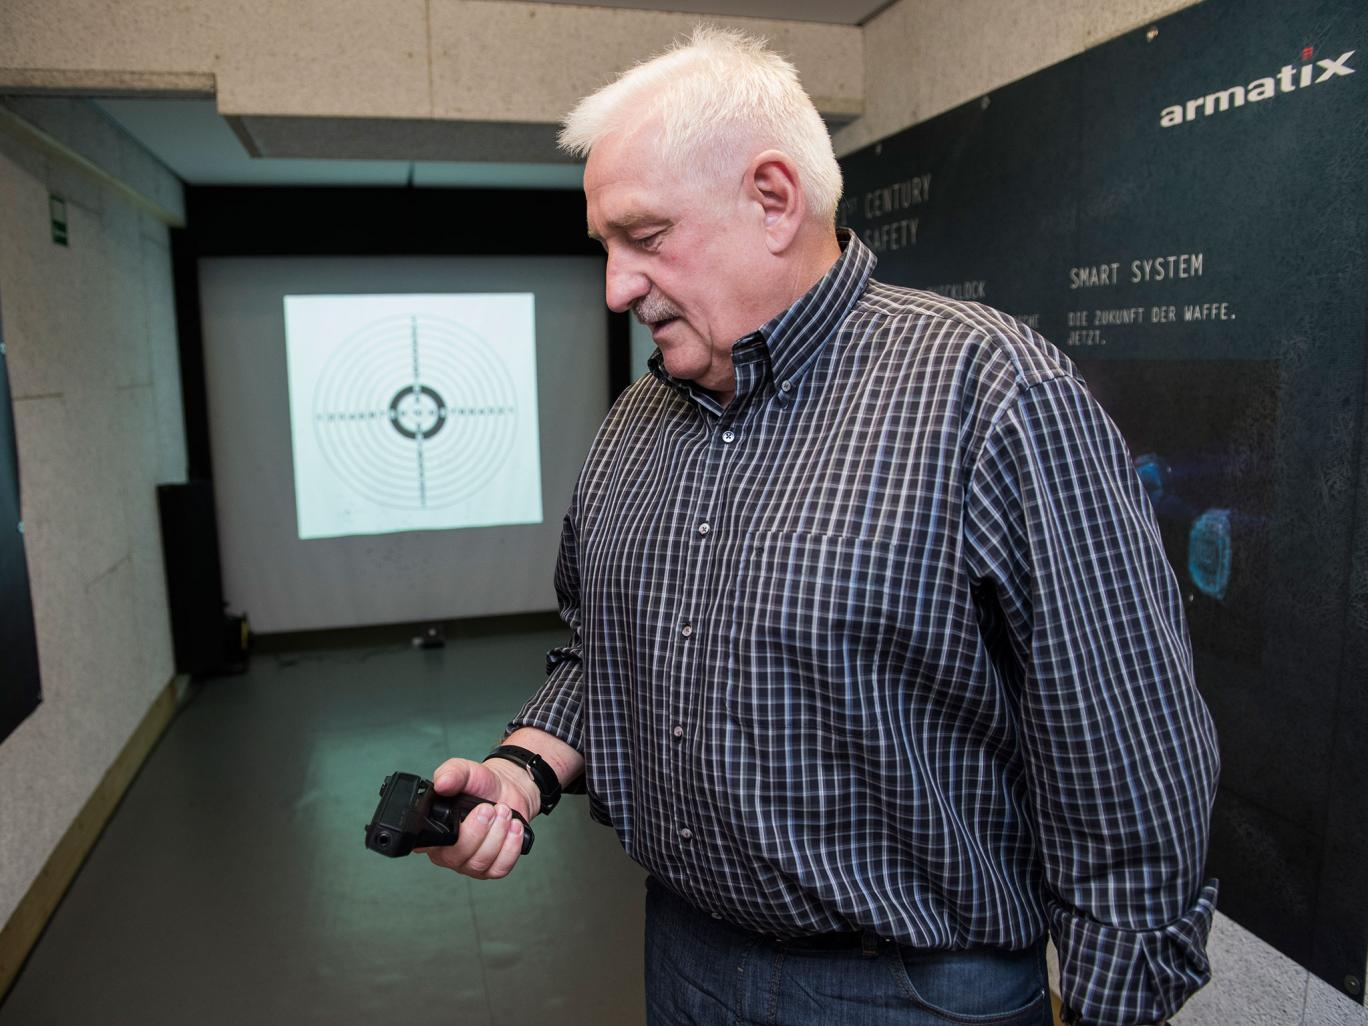 Ernst Mauch, legendary German firearm developer, left the famed Heckler & Koch gun manufacturer and is now working with a Radnor, Pa.-based startup called LodeStar Firearms to invent a smartgun made in the U.S. (Credit: LodeStar)